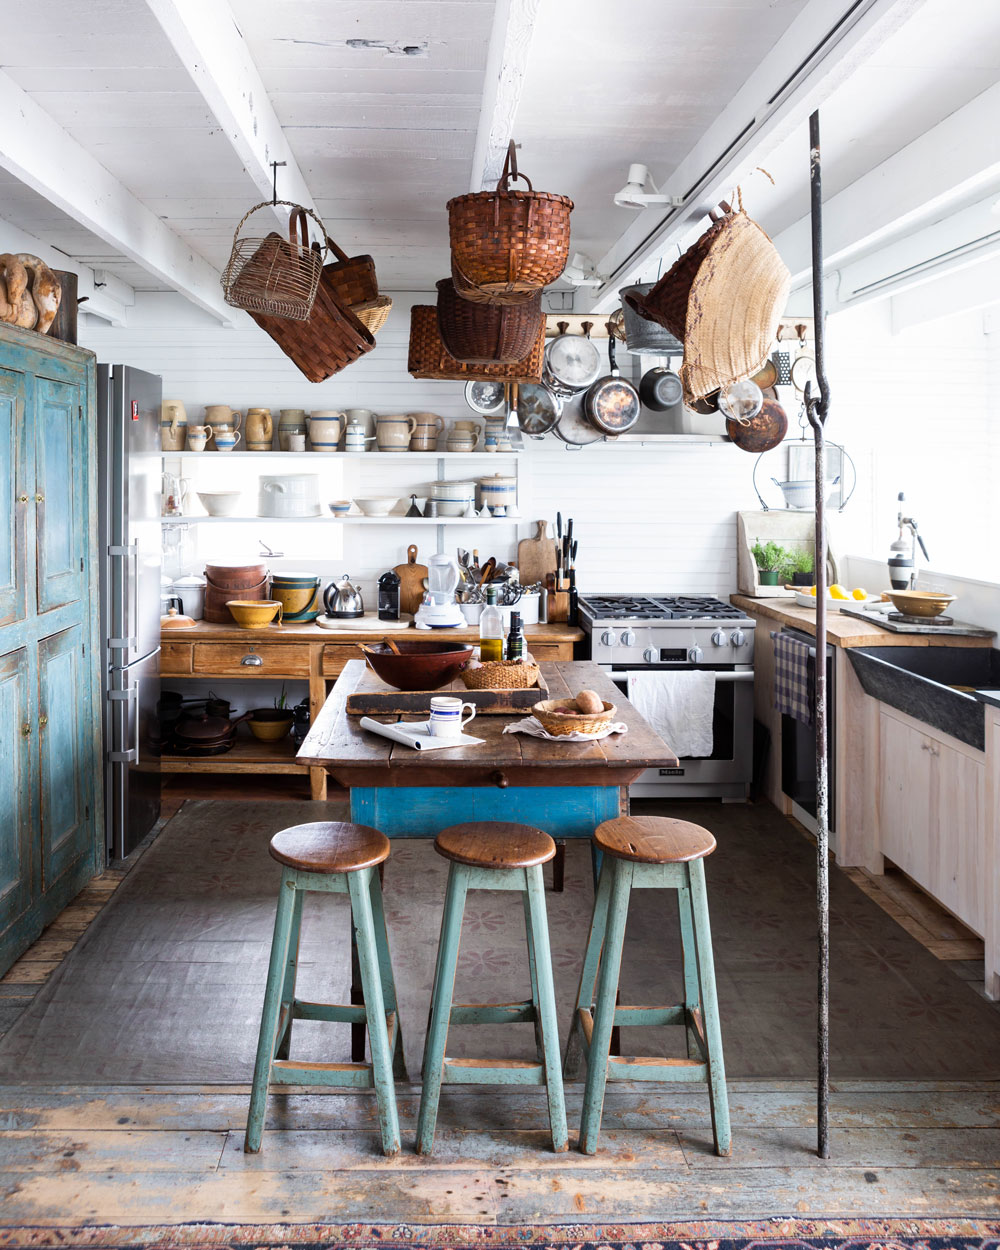 The Mrozinskis cook every meal together, and it shows. Well-used pots and pans. Knife marks in the butcher's block. A prep-slash-dining table. This is clearly a working kitchen, even with its whimsical basket and pottery displays.